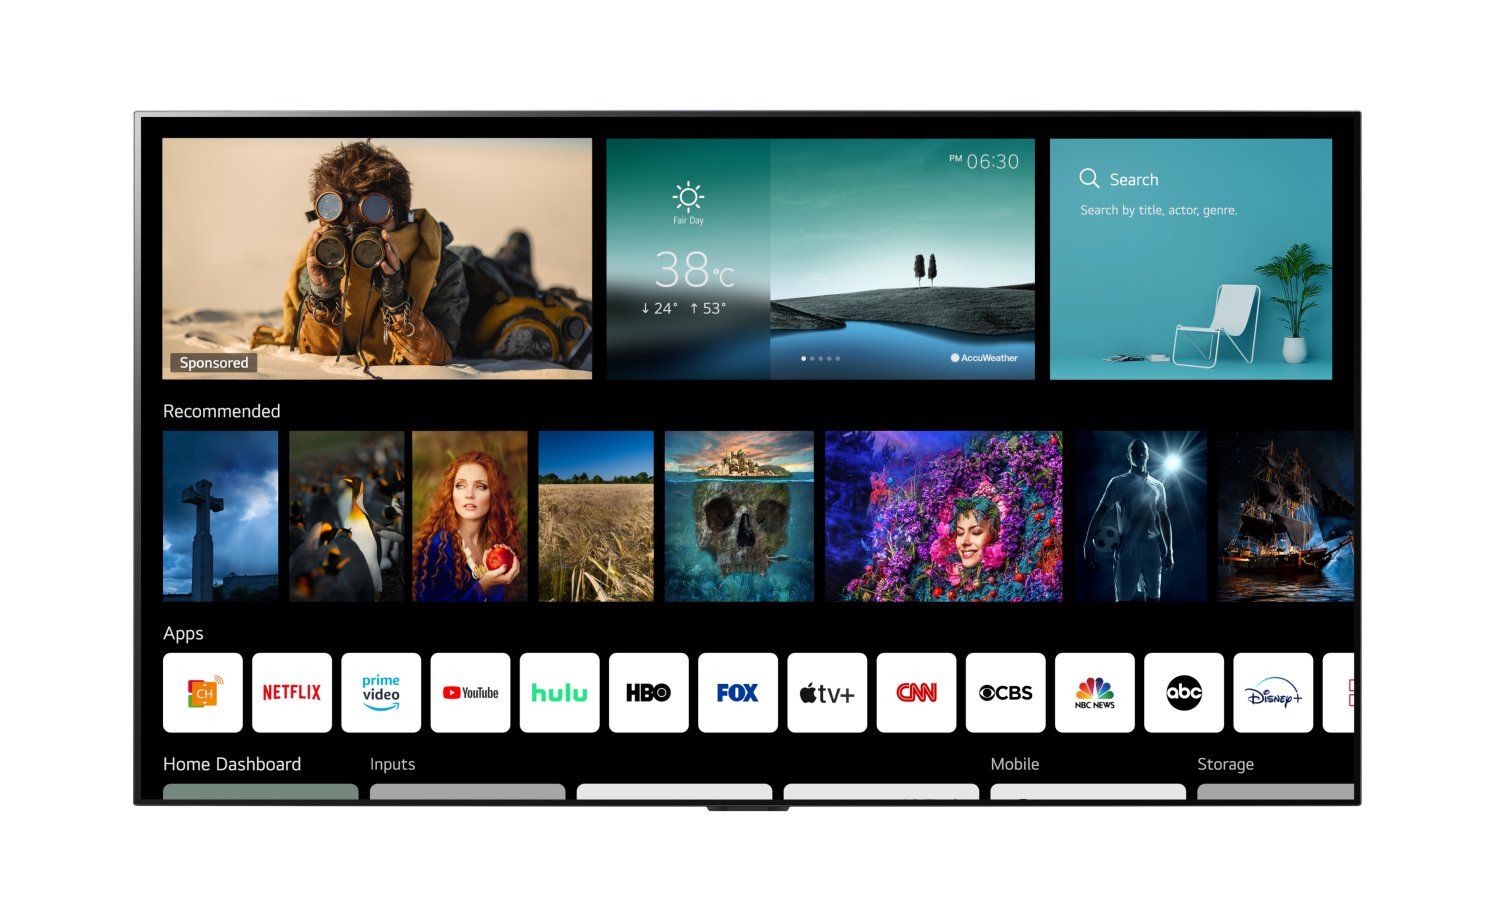 LG introduce il nuovo sistema operativo per Smart TV, webOS 6.0